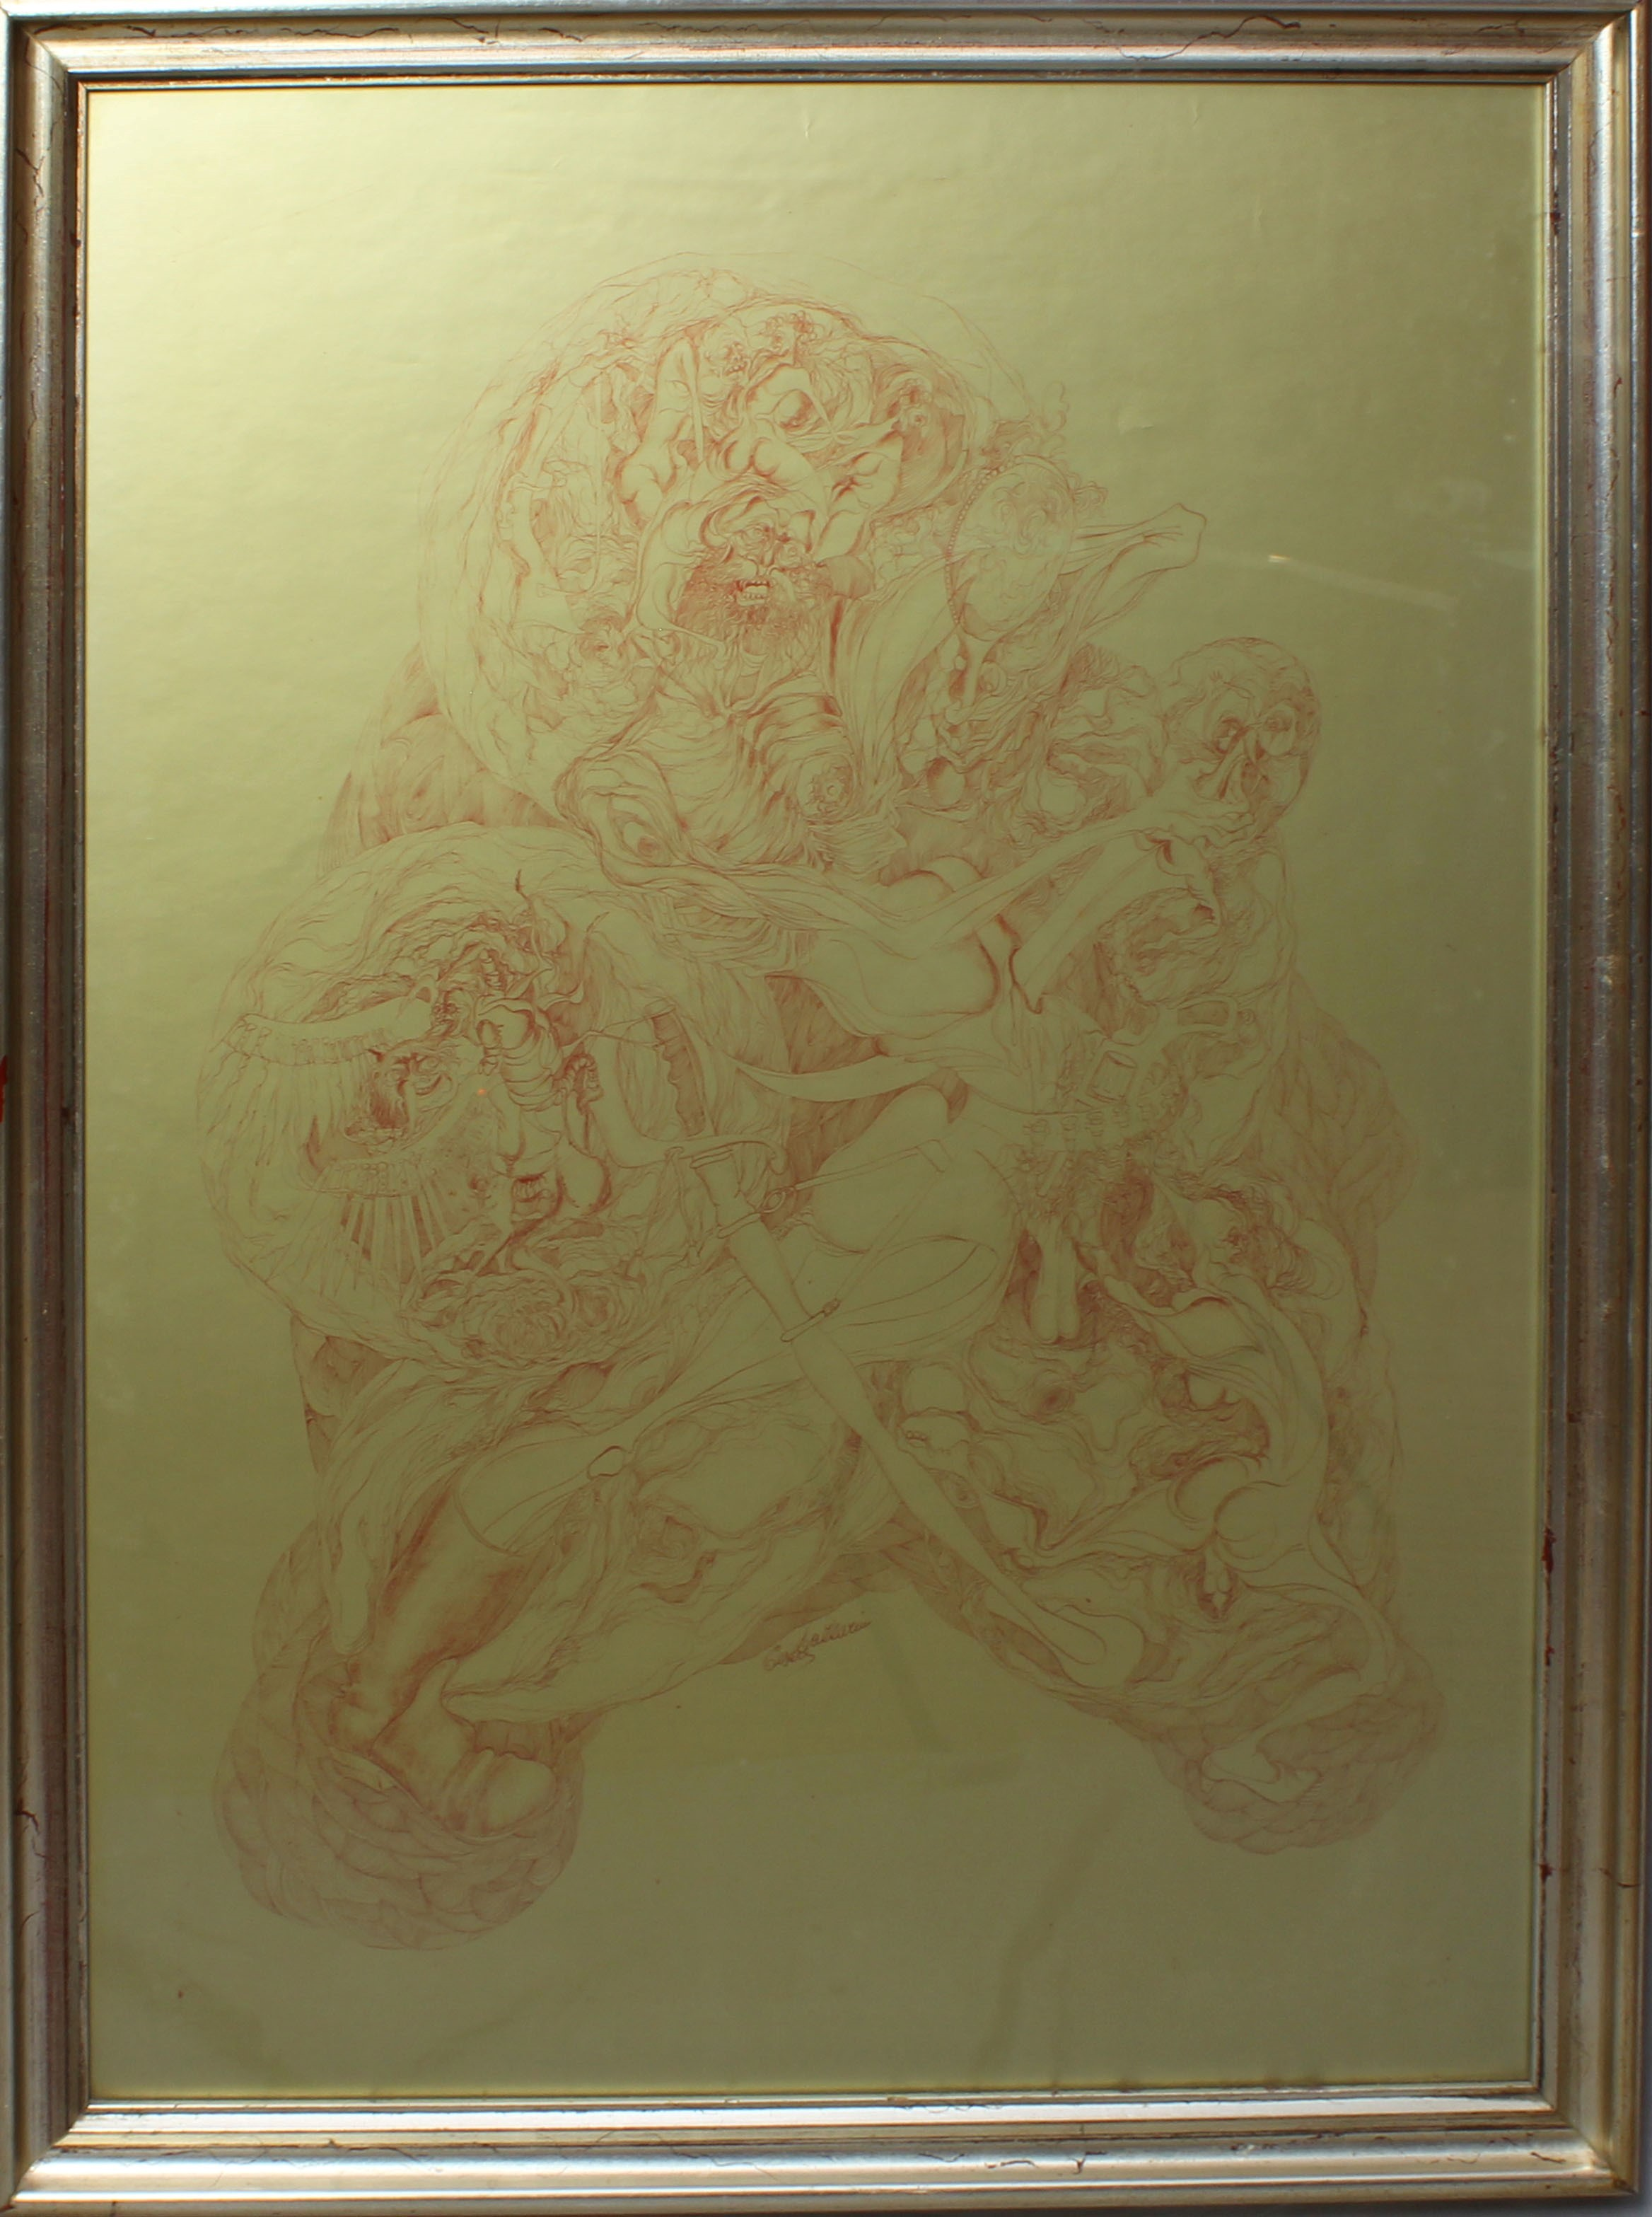 Lot 5 - Astratto, grafica a firma Lazzarini, cm. 60x85